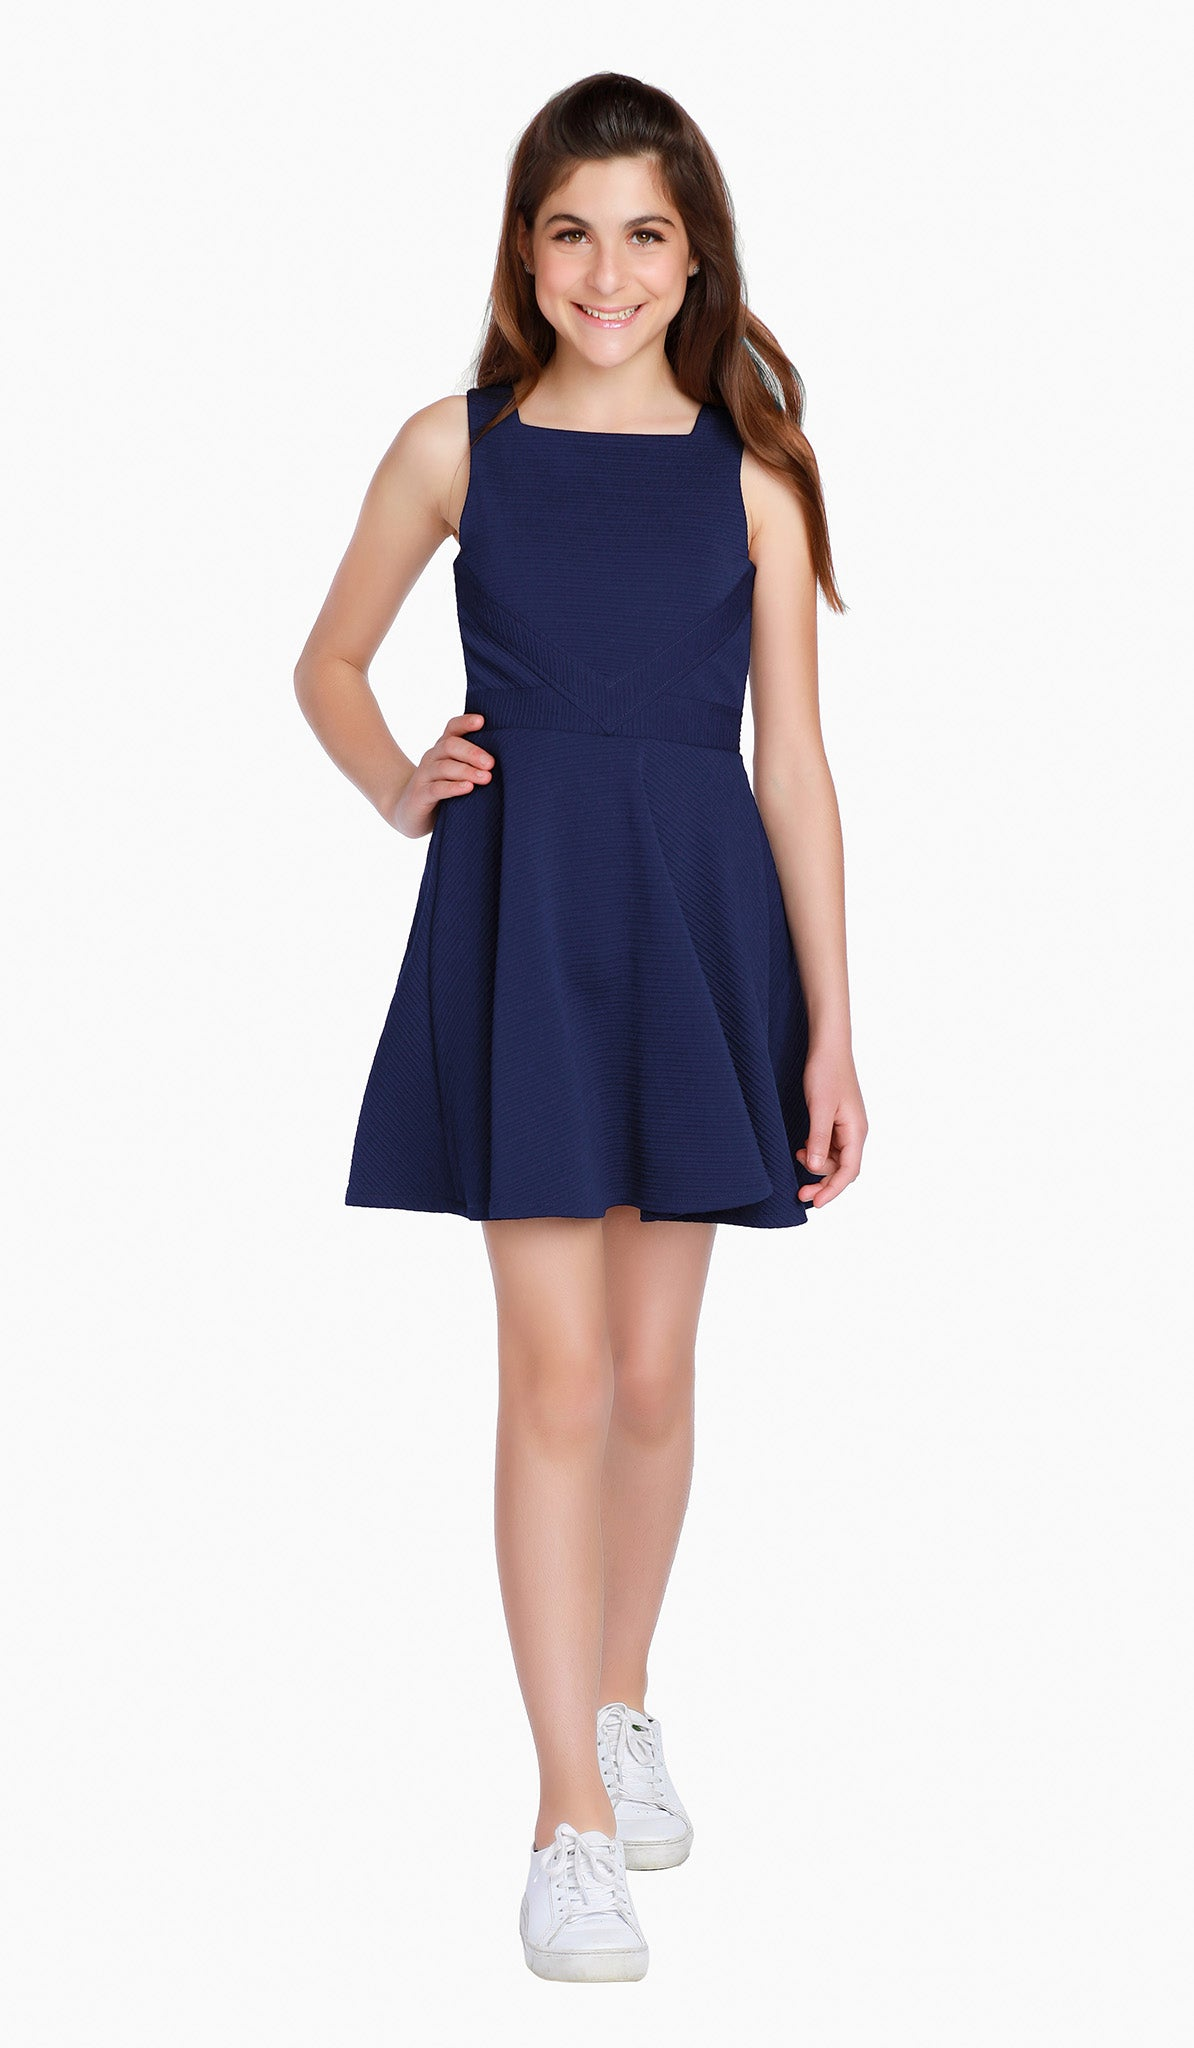 THE BOCA DRESS - Sallymiller.com - [variant title] - | Event & Party Dresses for Tween Girls & Juniors | Weddings Dresses, Bat Mitzvah Dresses, Sweet Sixteen Dresses, Graduation Dresses, Birthday Party Dresses, Bar Mitzvah Dresses, Cotillion Dresses